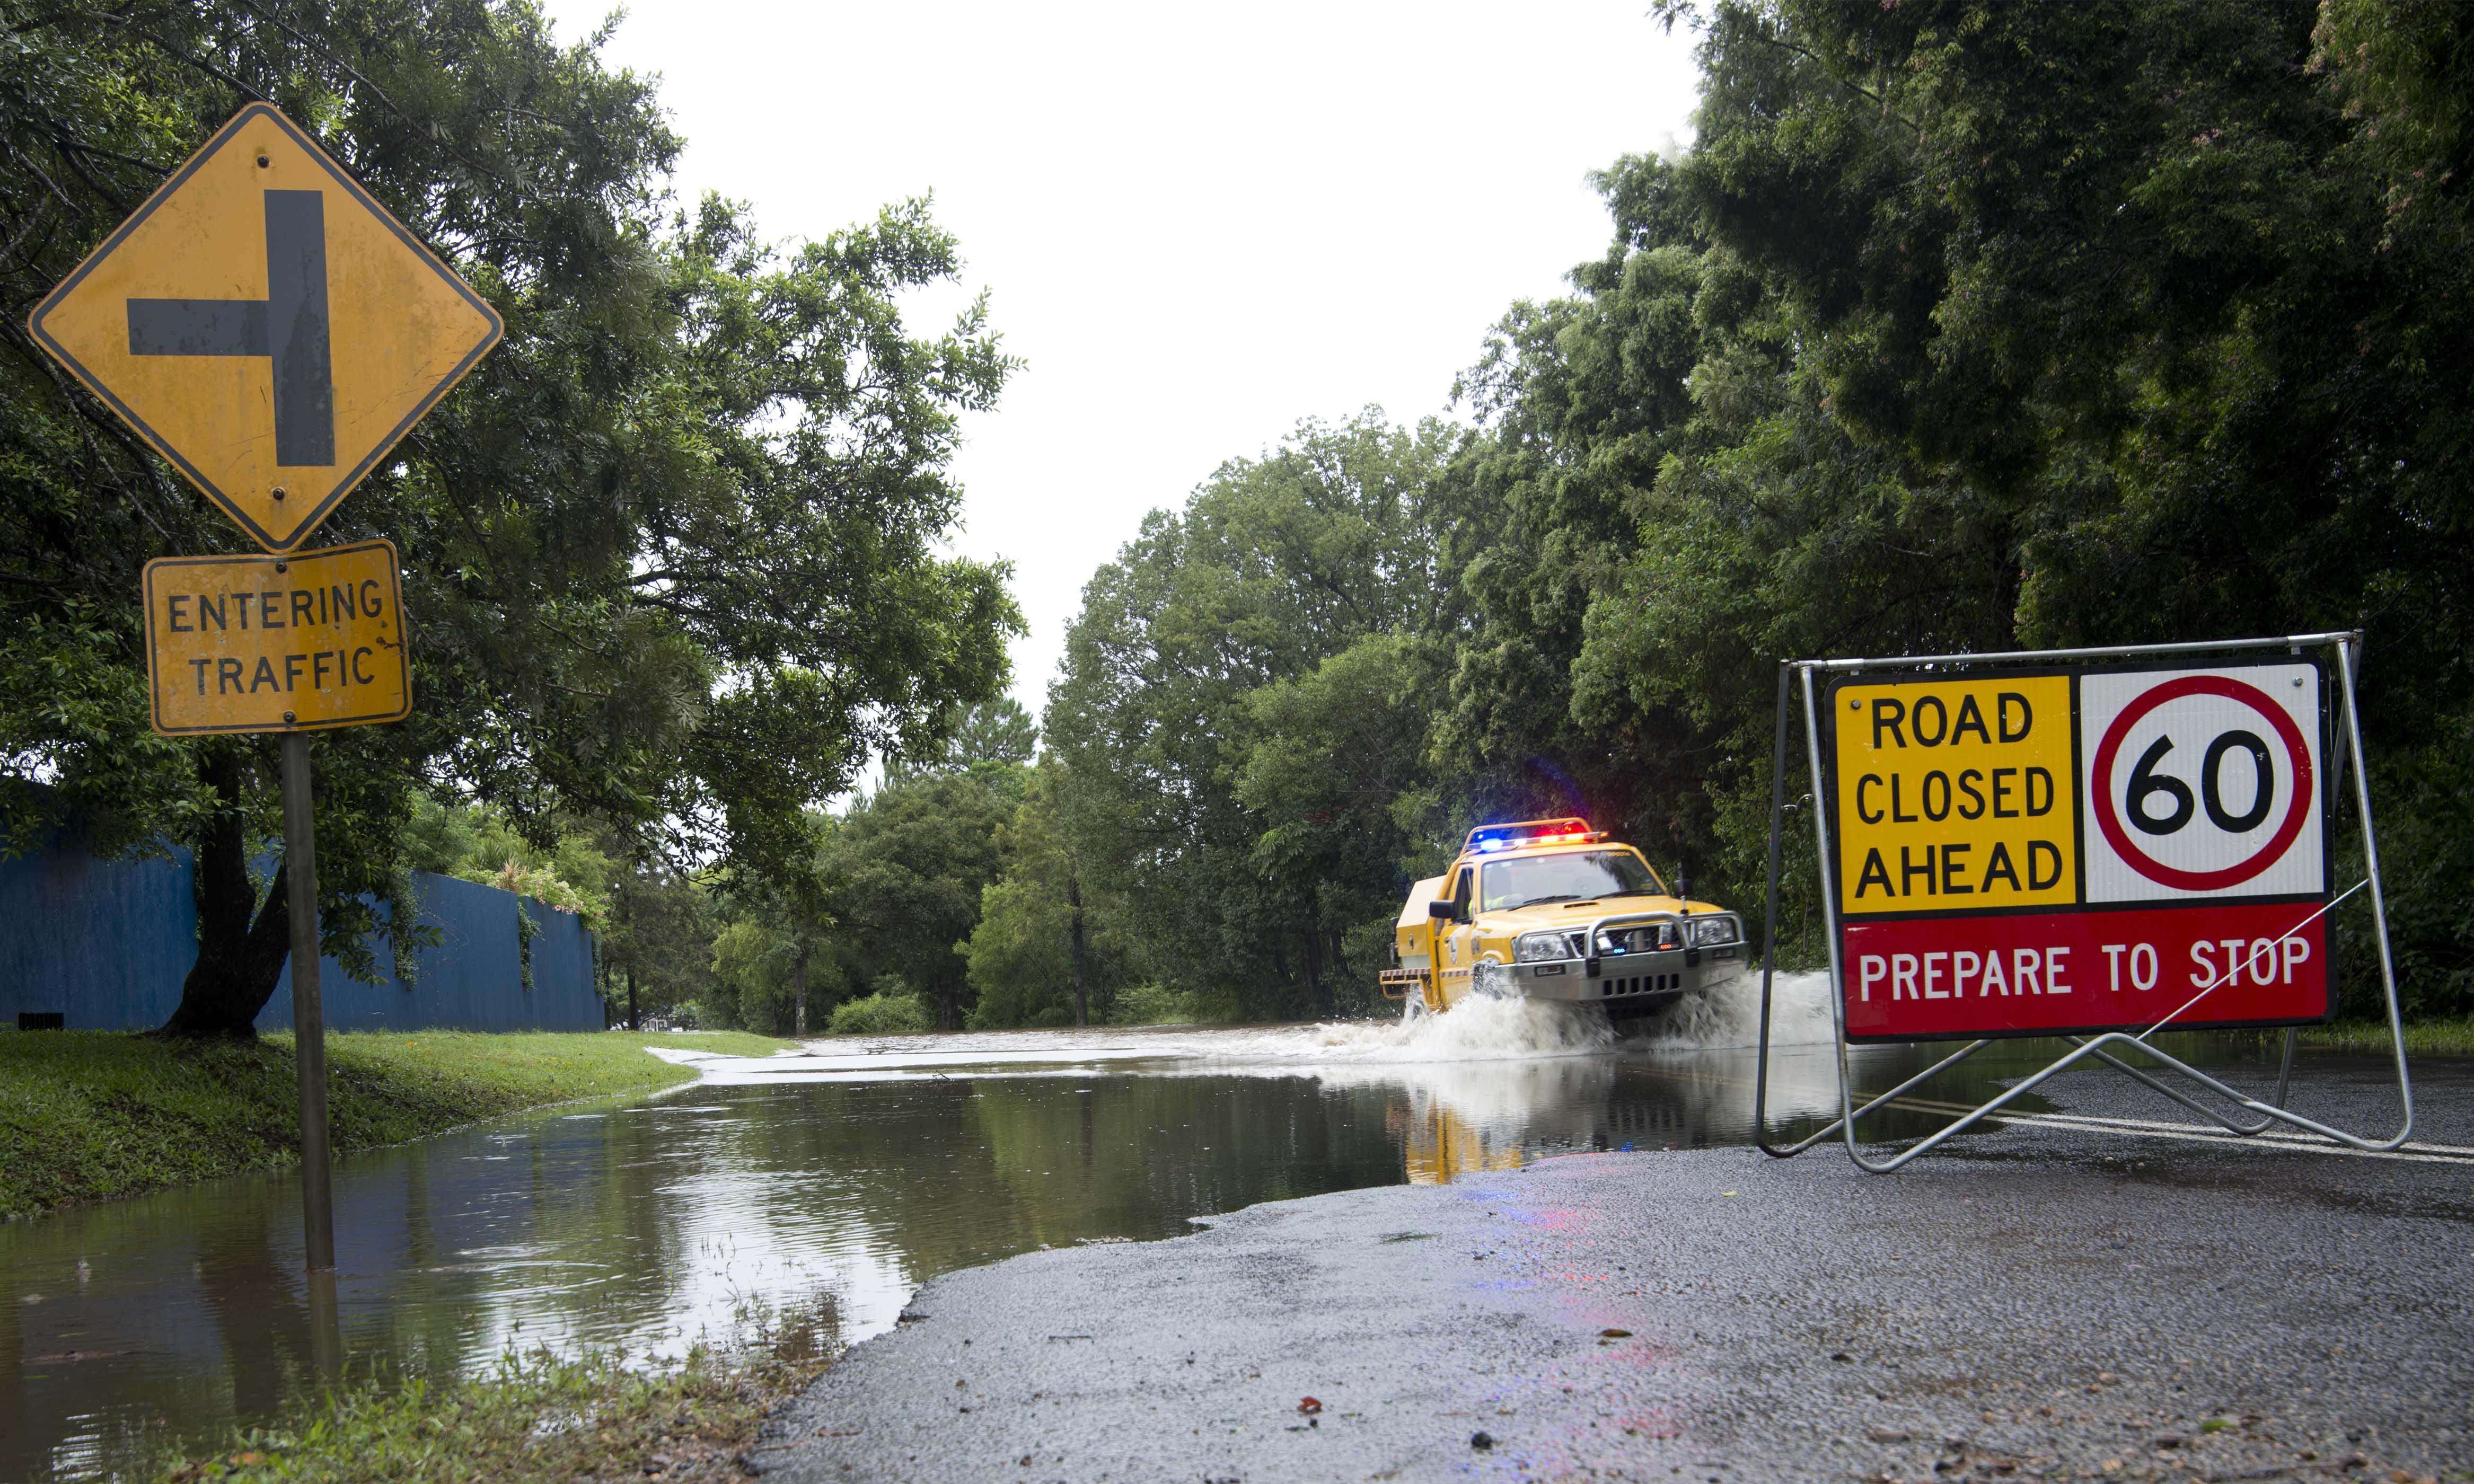 A car passes through a flooded road. A road sign saying 'road closed ahead' is visible in the foreground